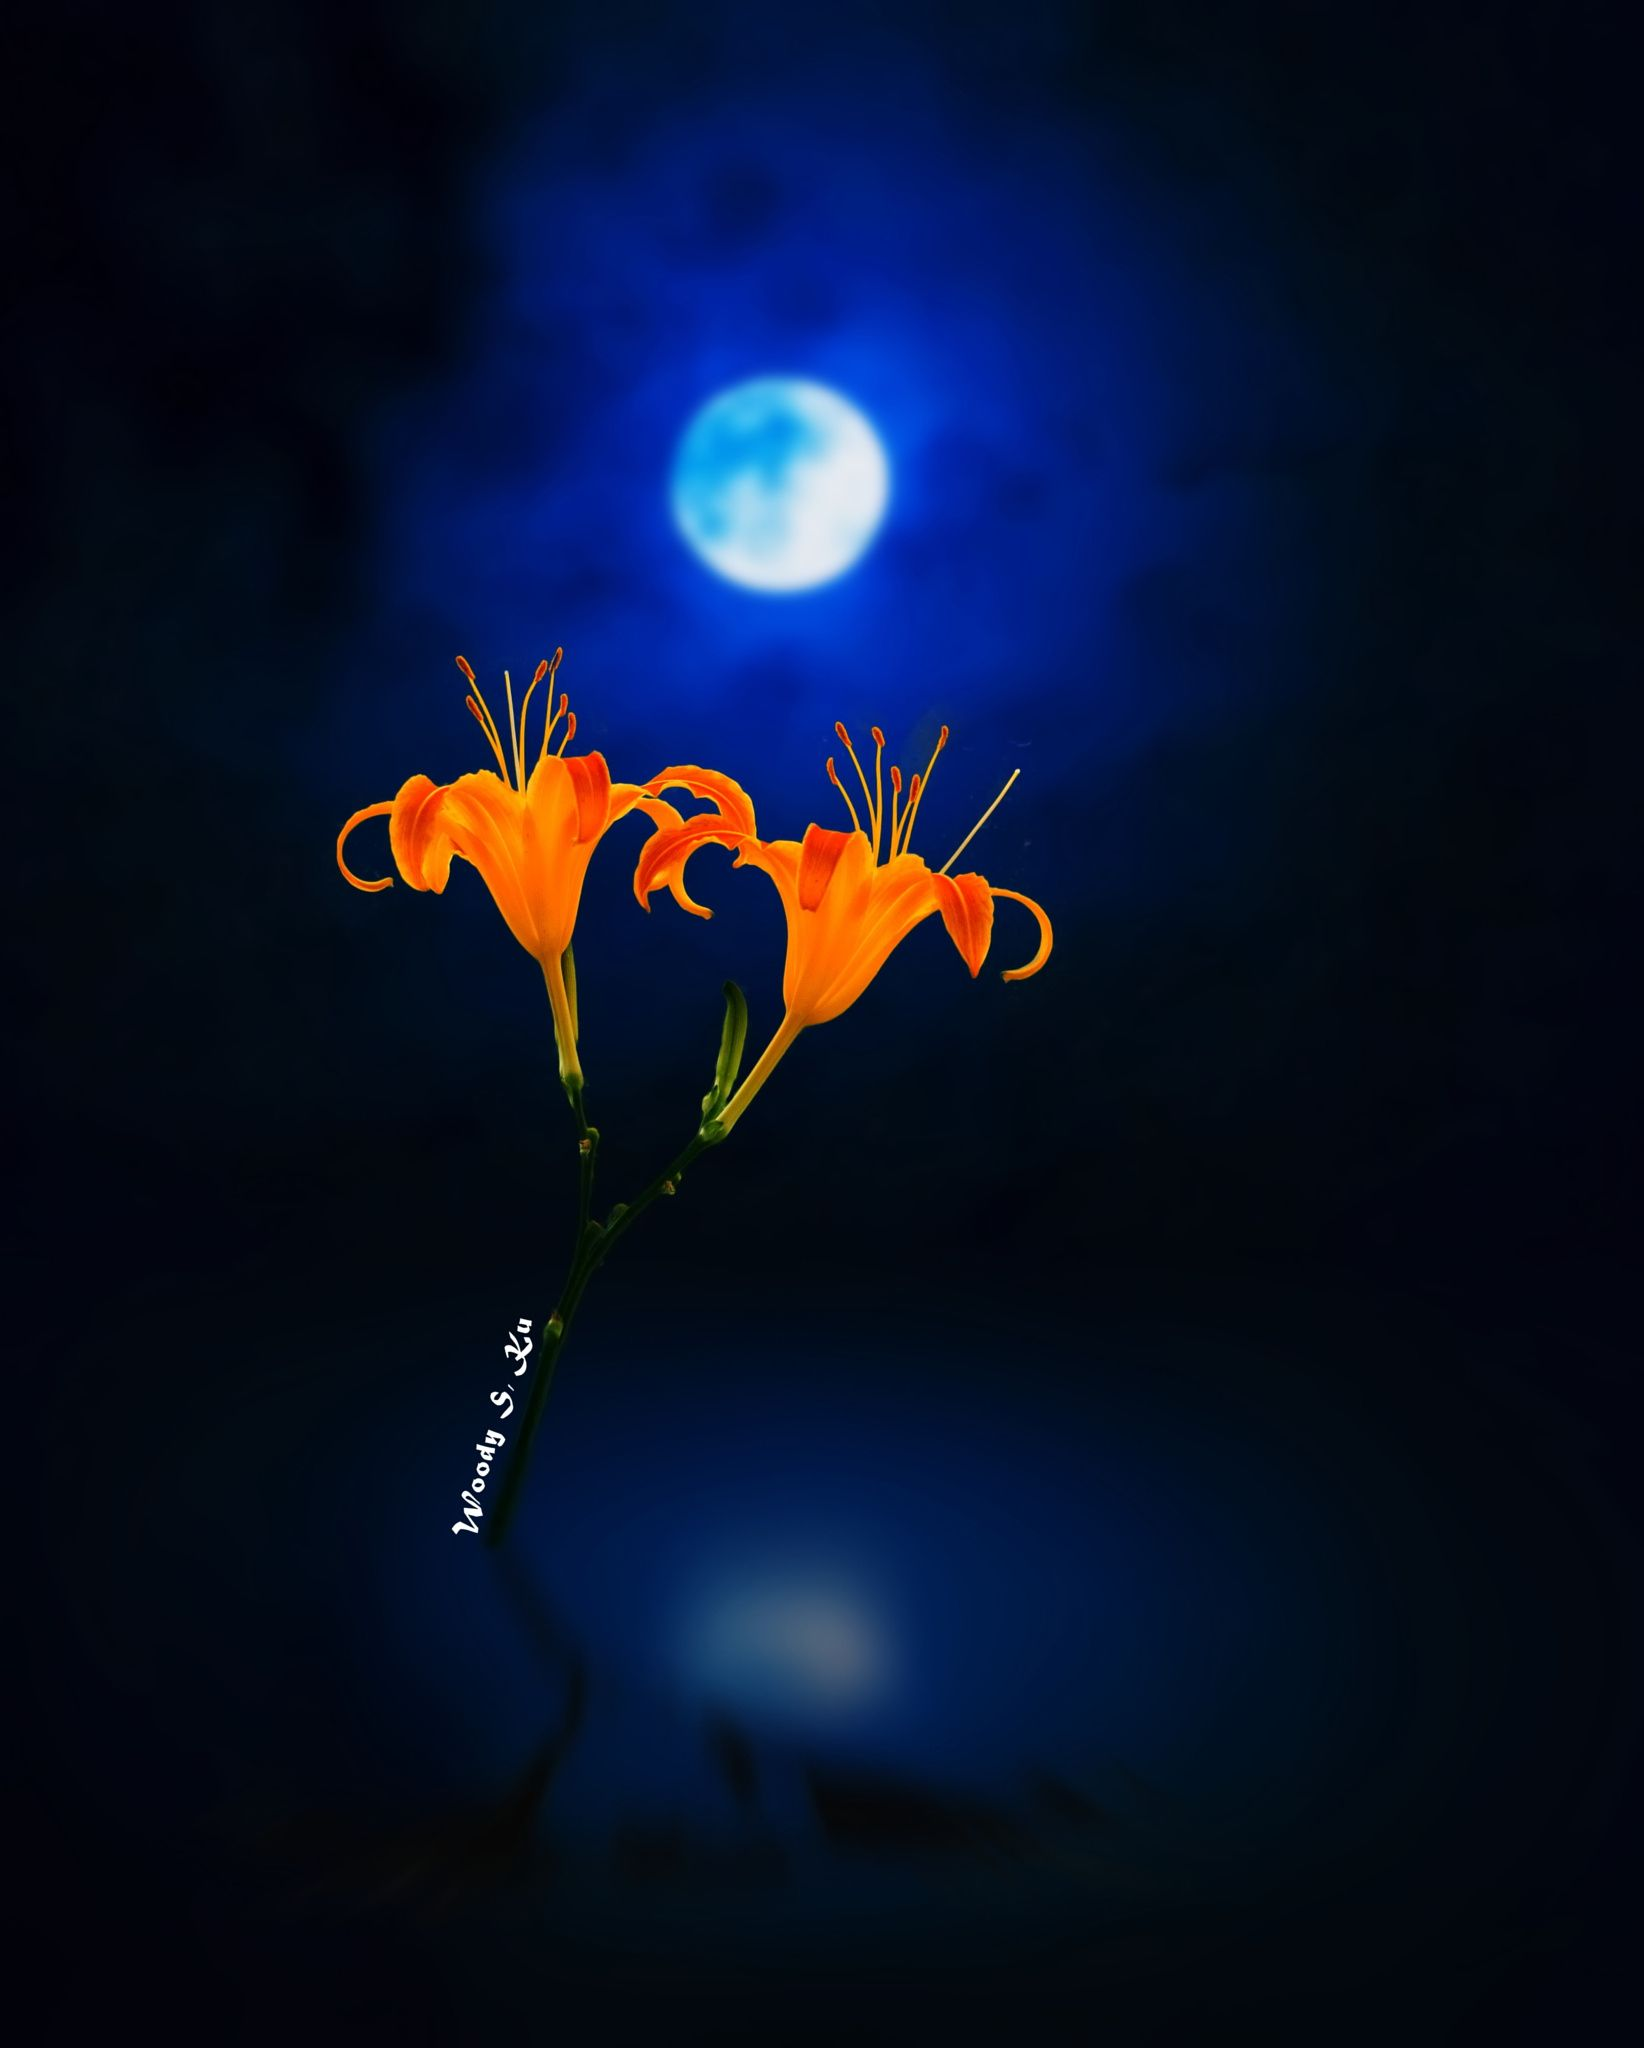 Romantic Yellow Lily Flower Under The Moon Light Gods